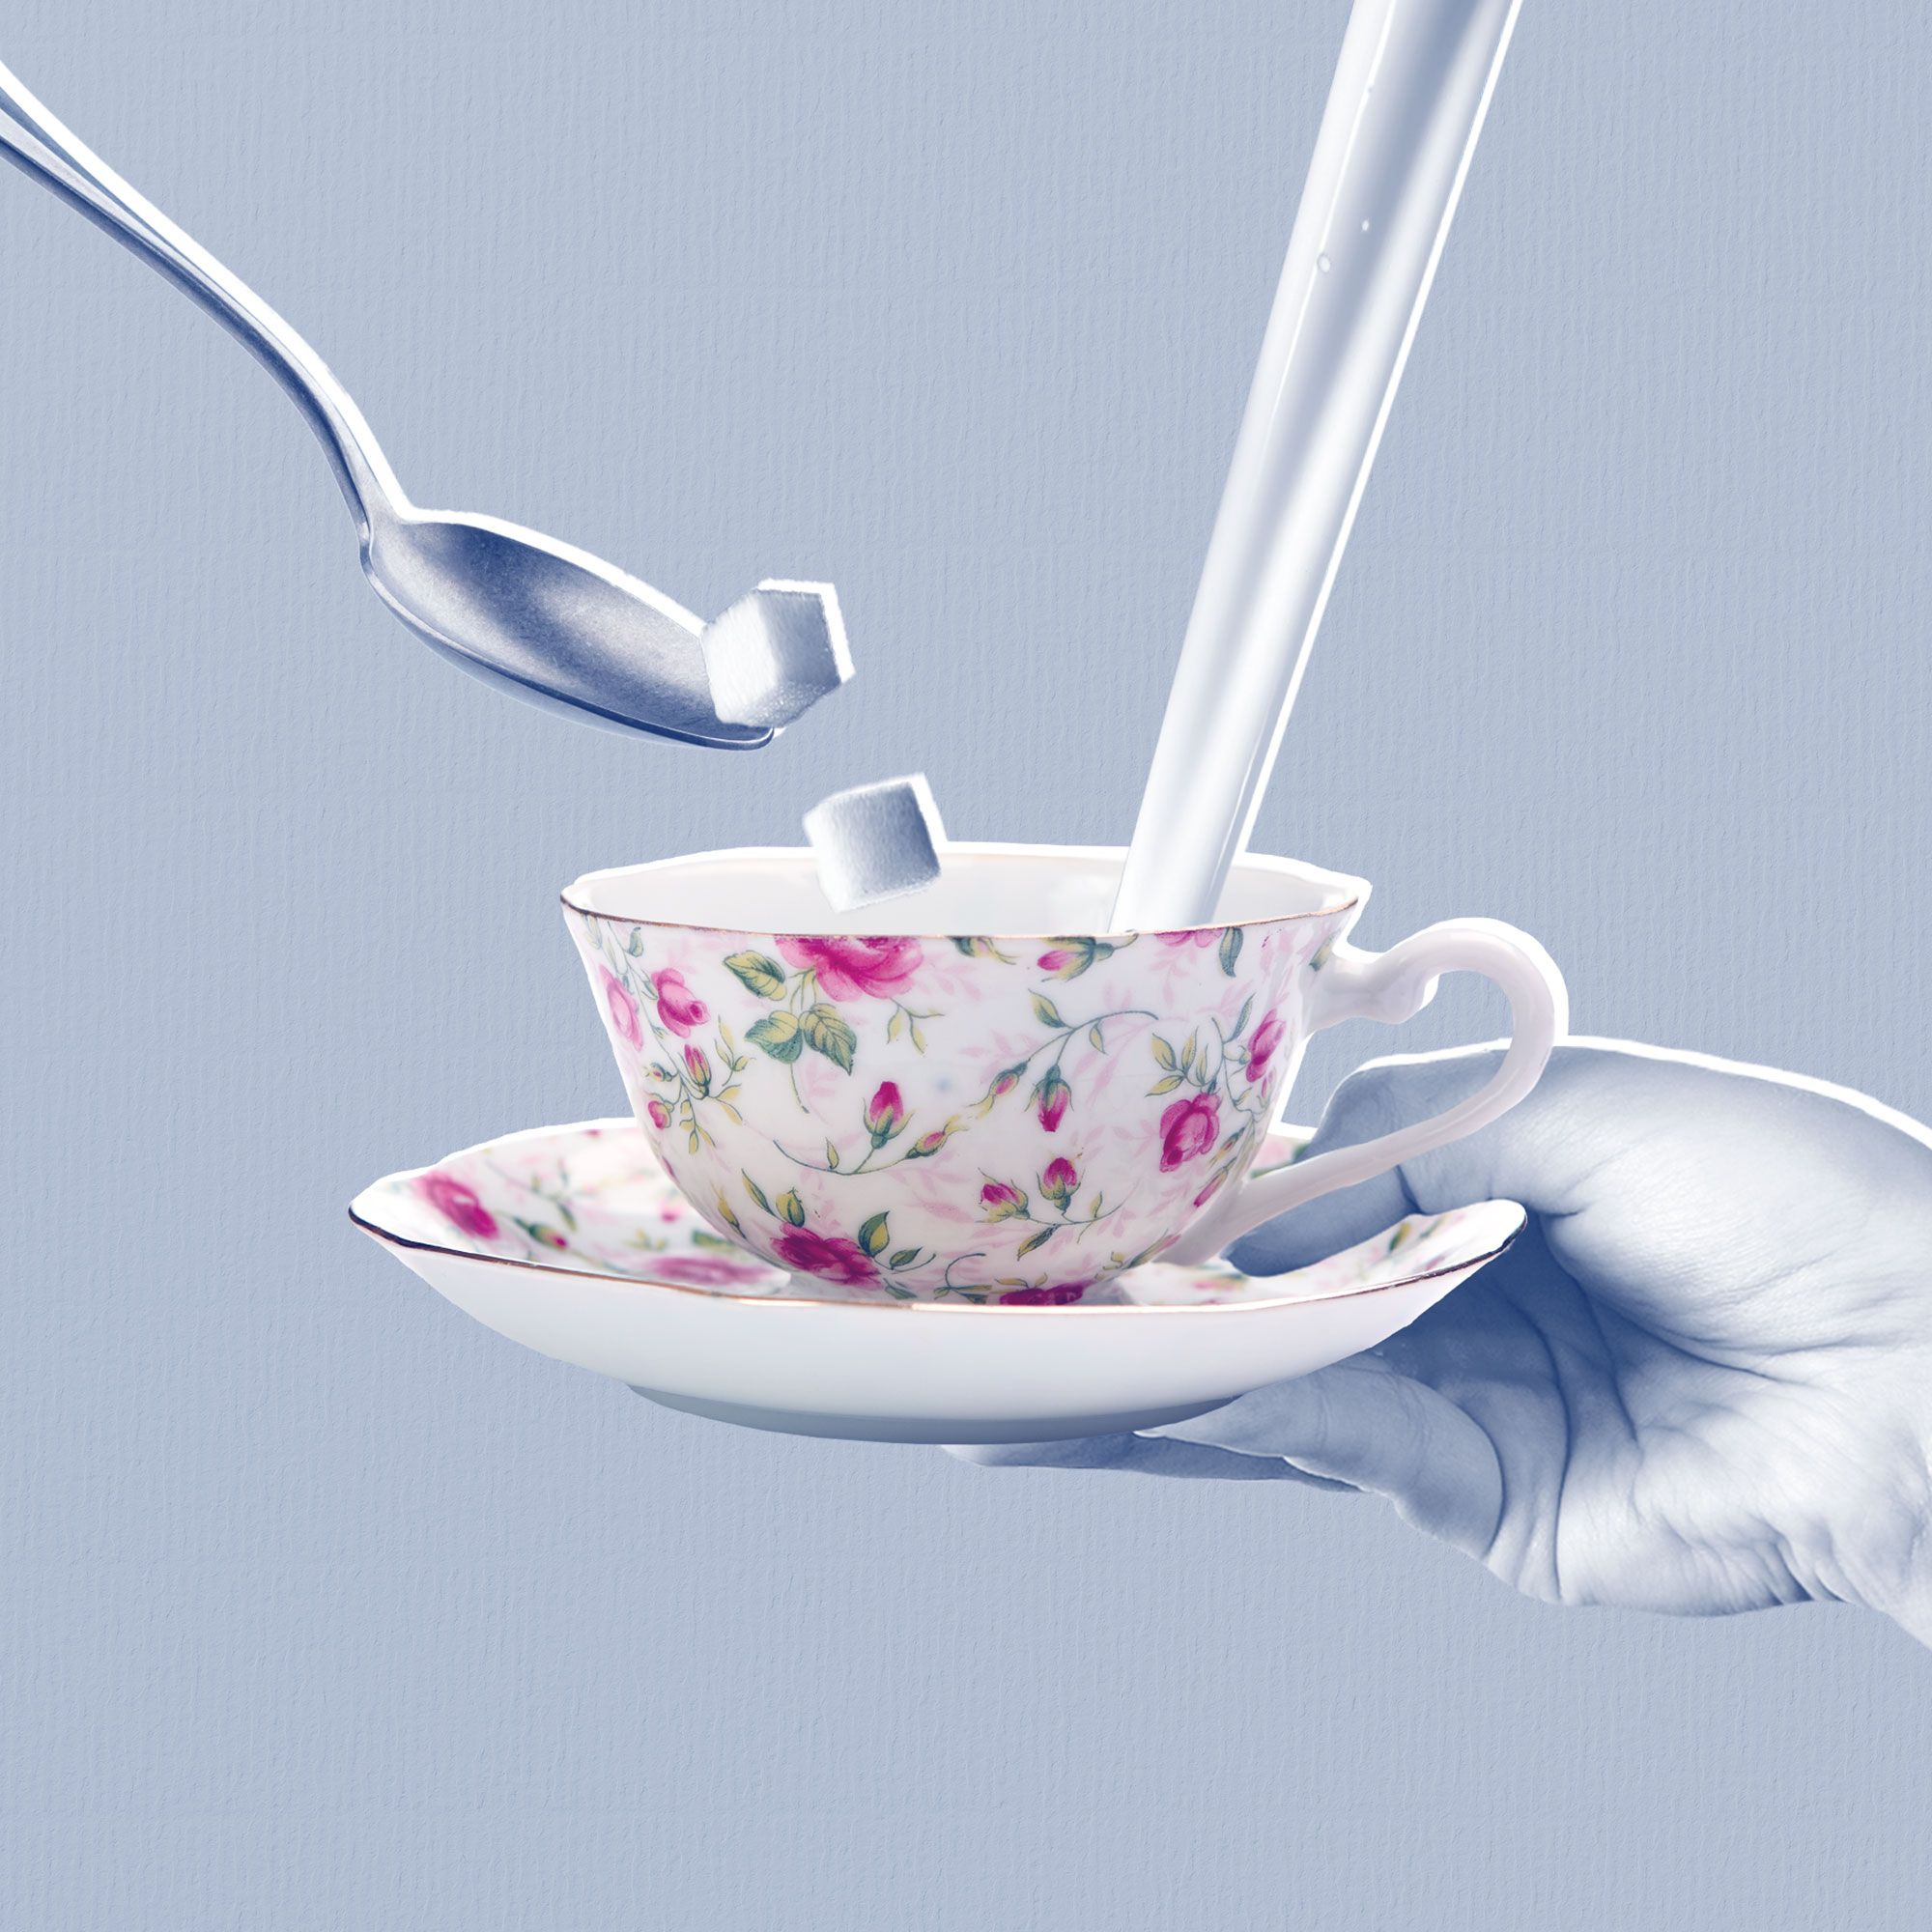 10 Etiquette Rules For Afternoon Tea How To Properly Have Tea